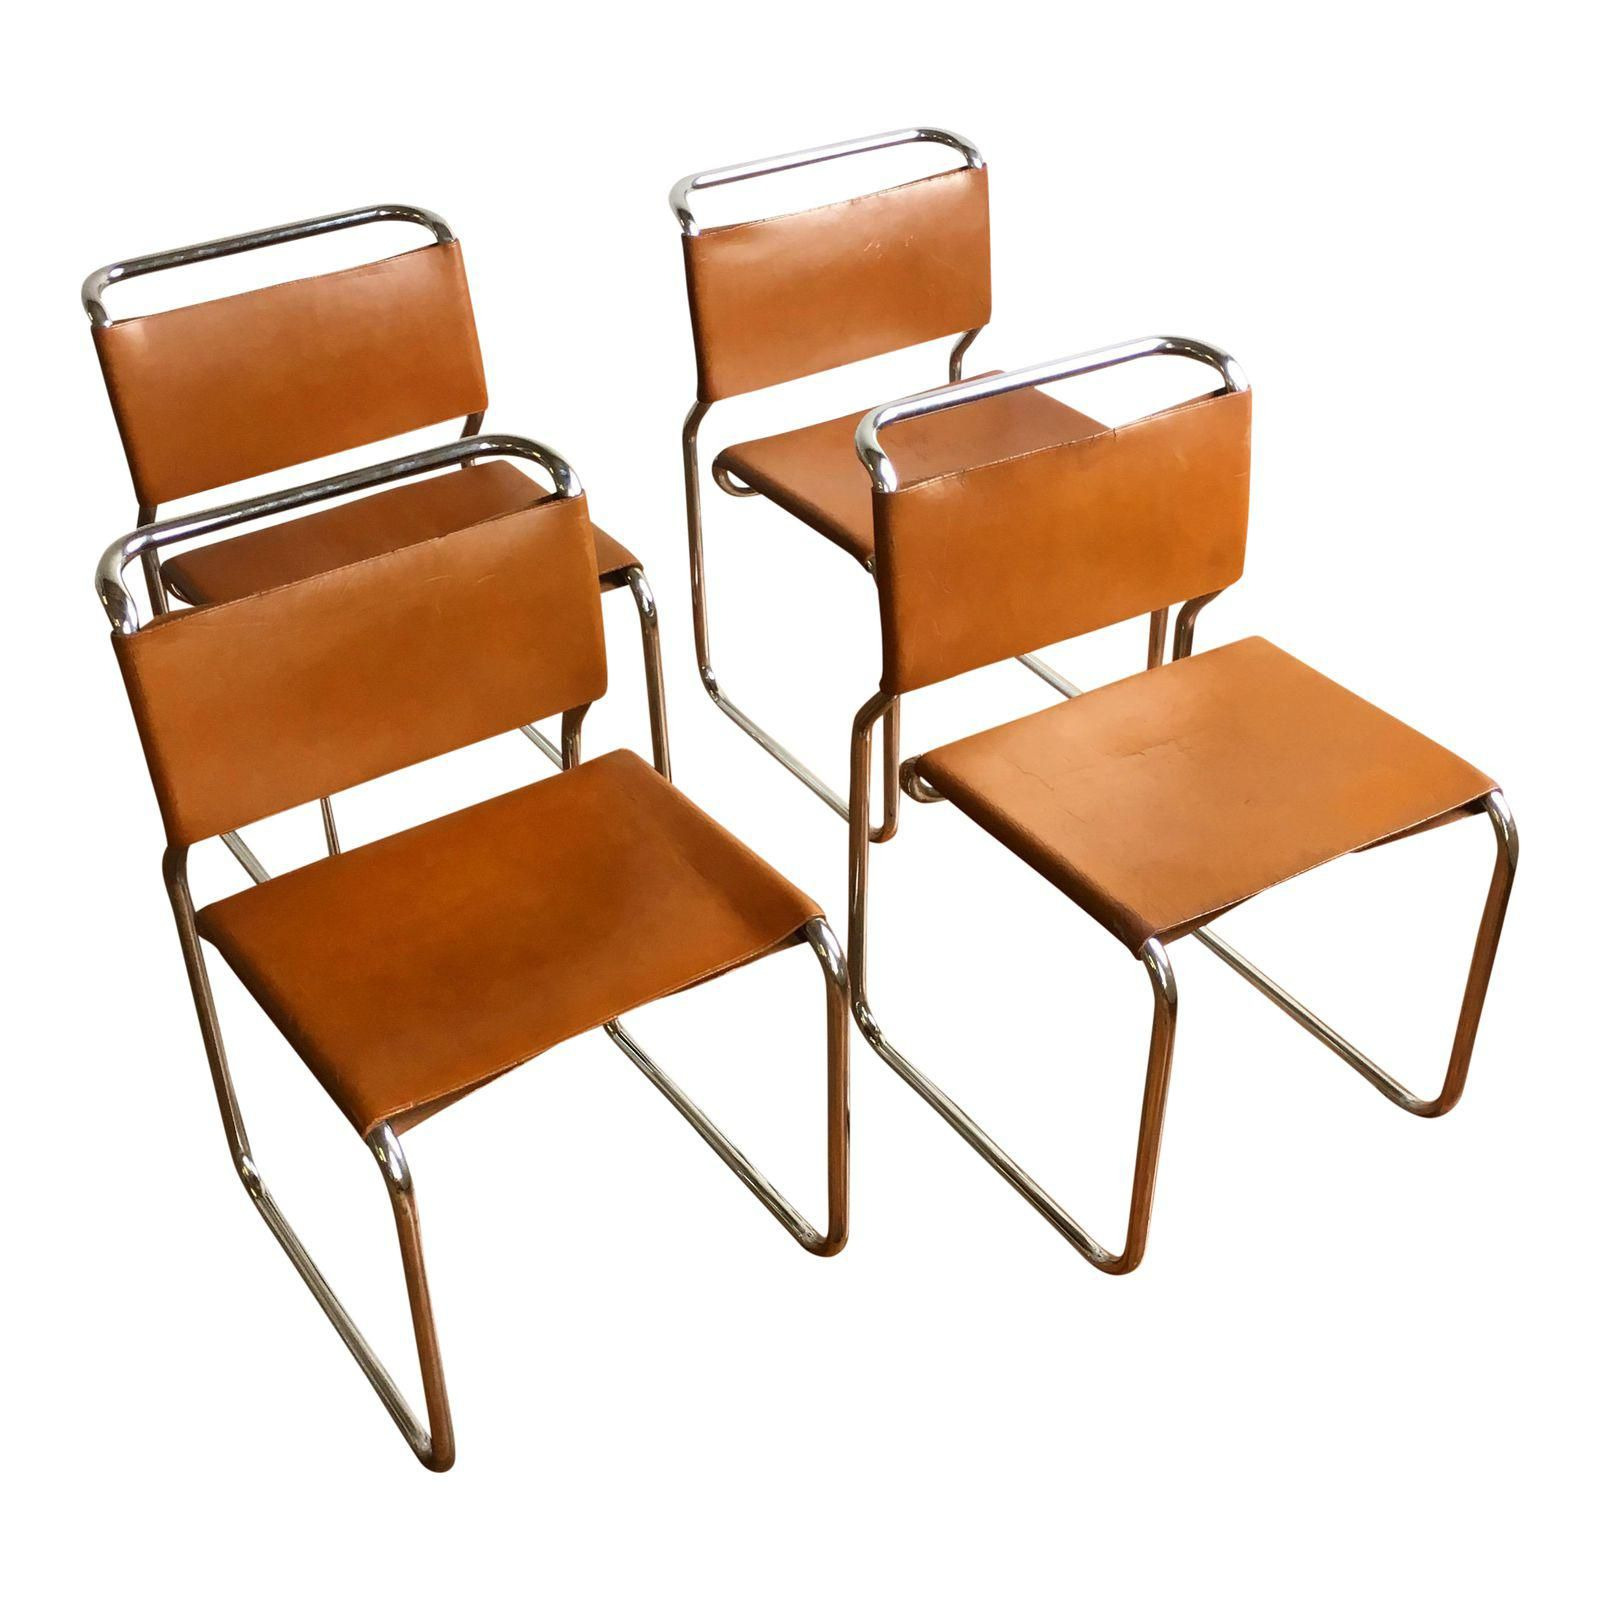 Vintage Oiled Leather Chrome Cantilever Chairs By Nicos